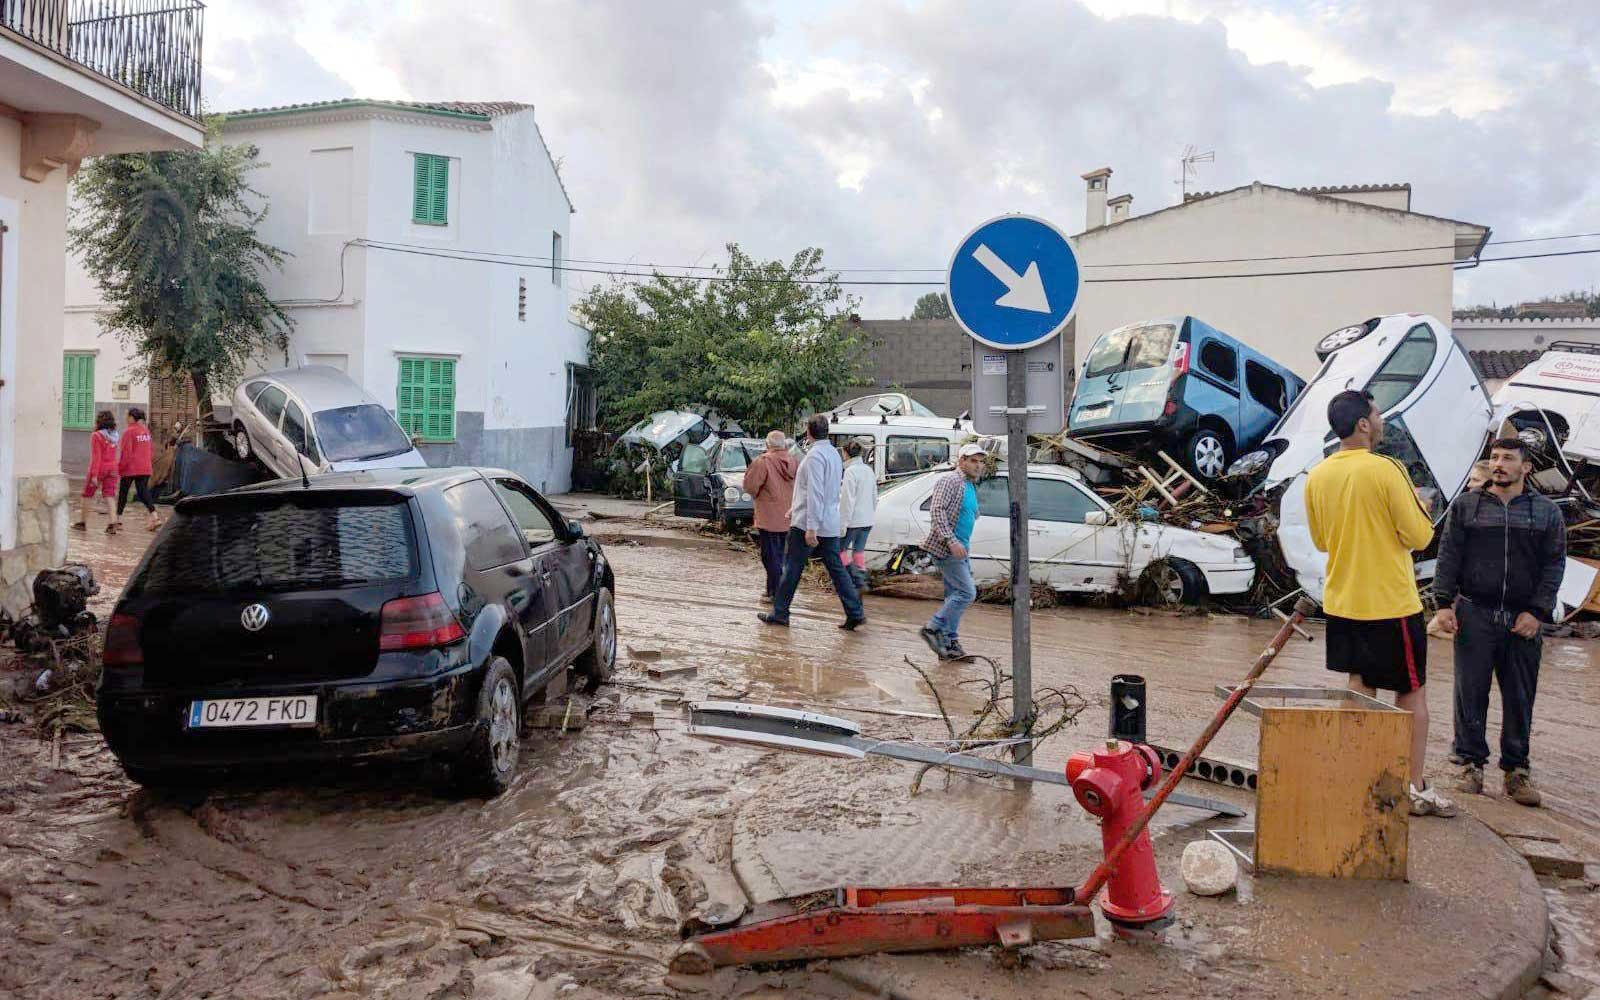 Several people died in flash floods in Majorca island, Sant Llorenc, Spain - 10 Oct 2018